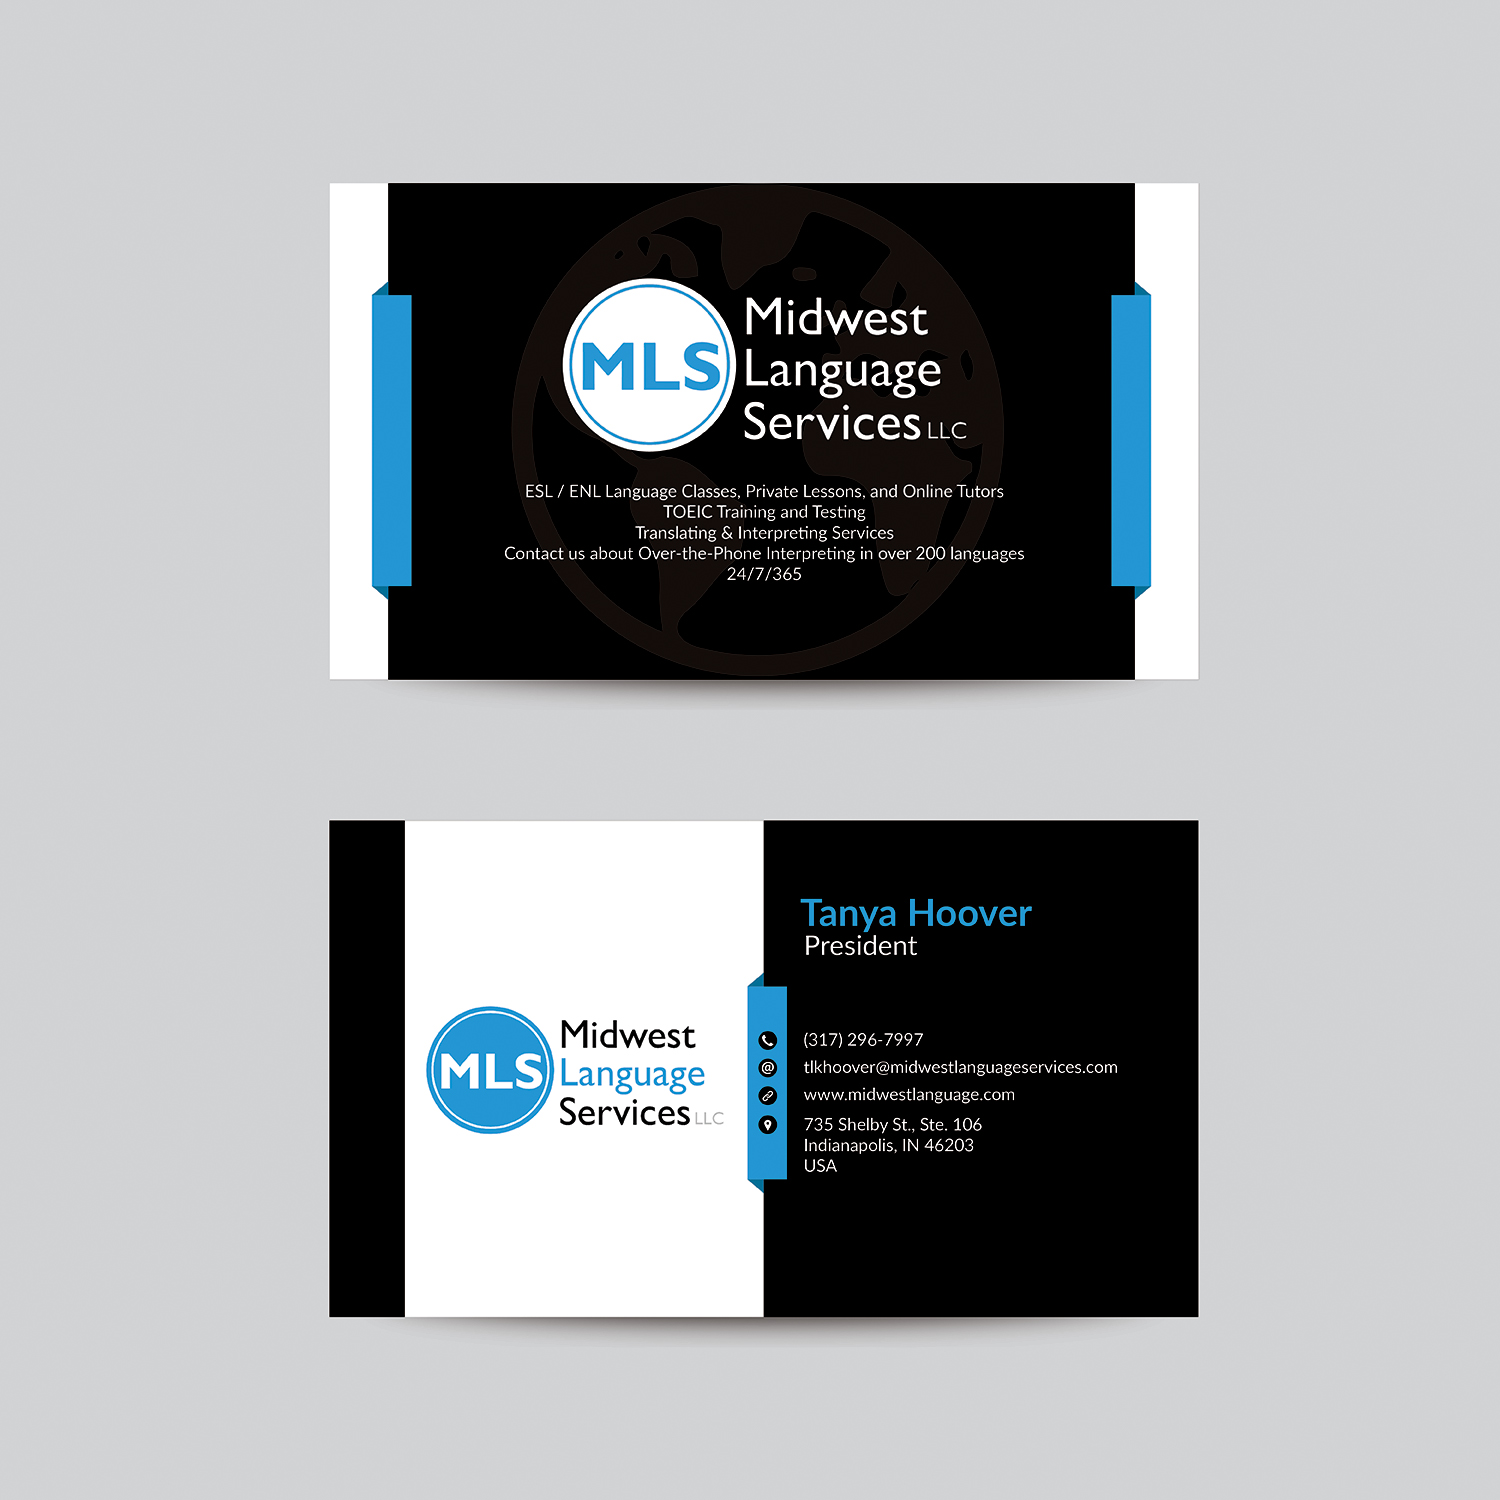 Serious modern business business card design for midwest language business card design by bdesigner9 for midwest language services llc design 17786850 reheart Image collections